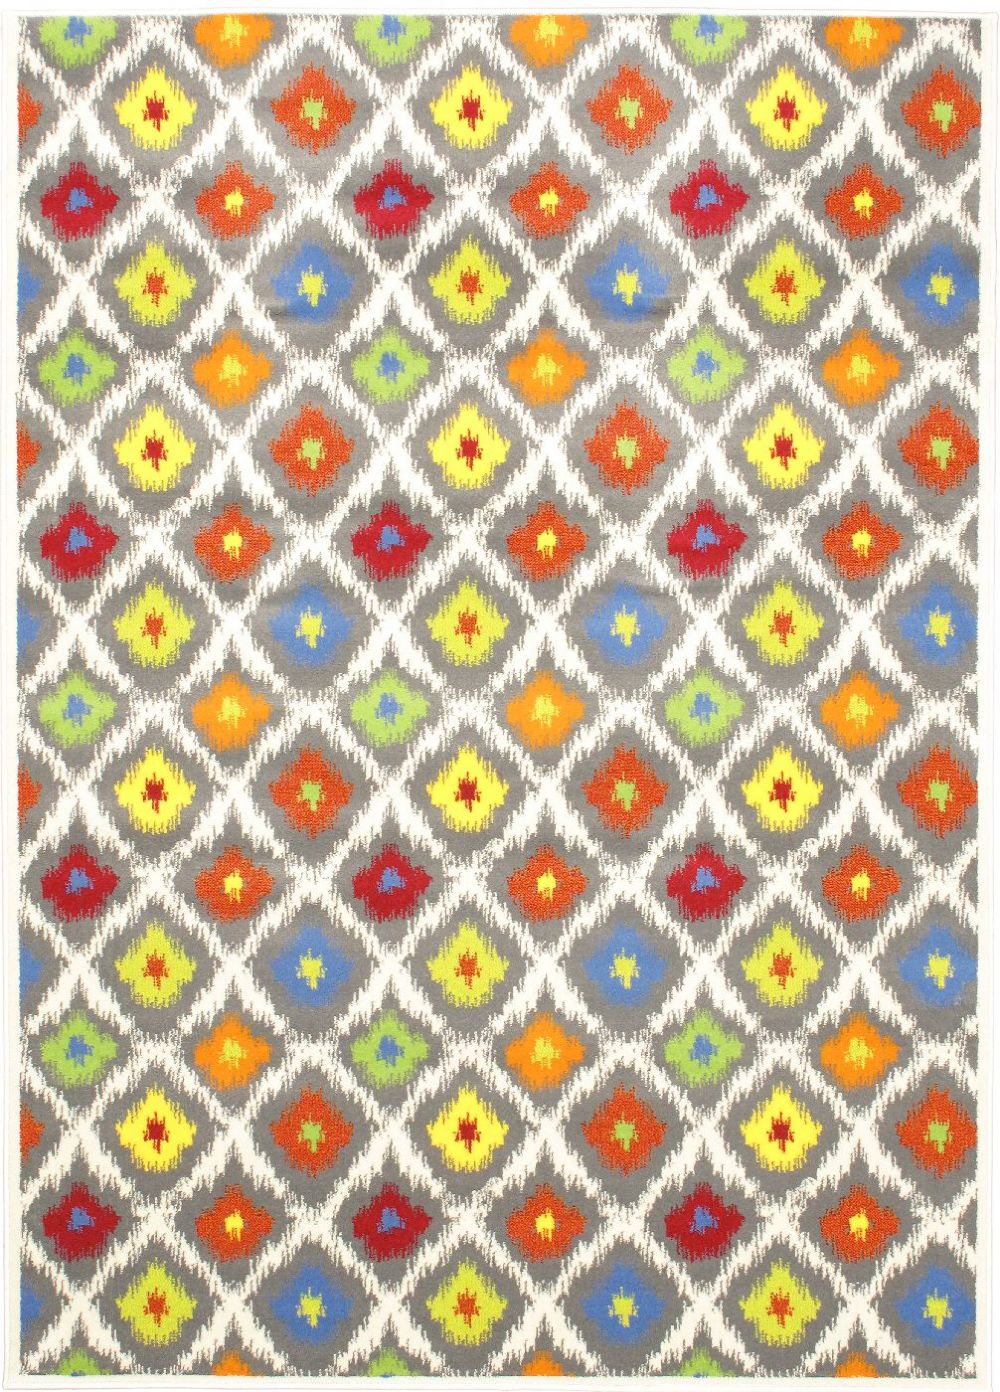 ecarpet gallery chroma glow contemporary area rug collection